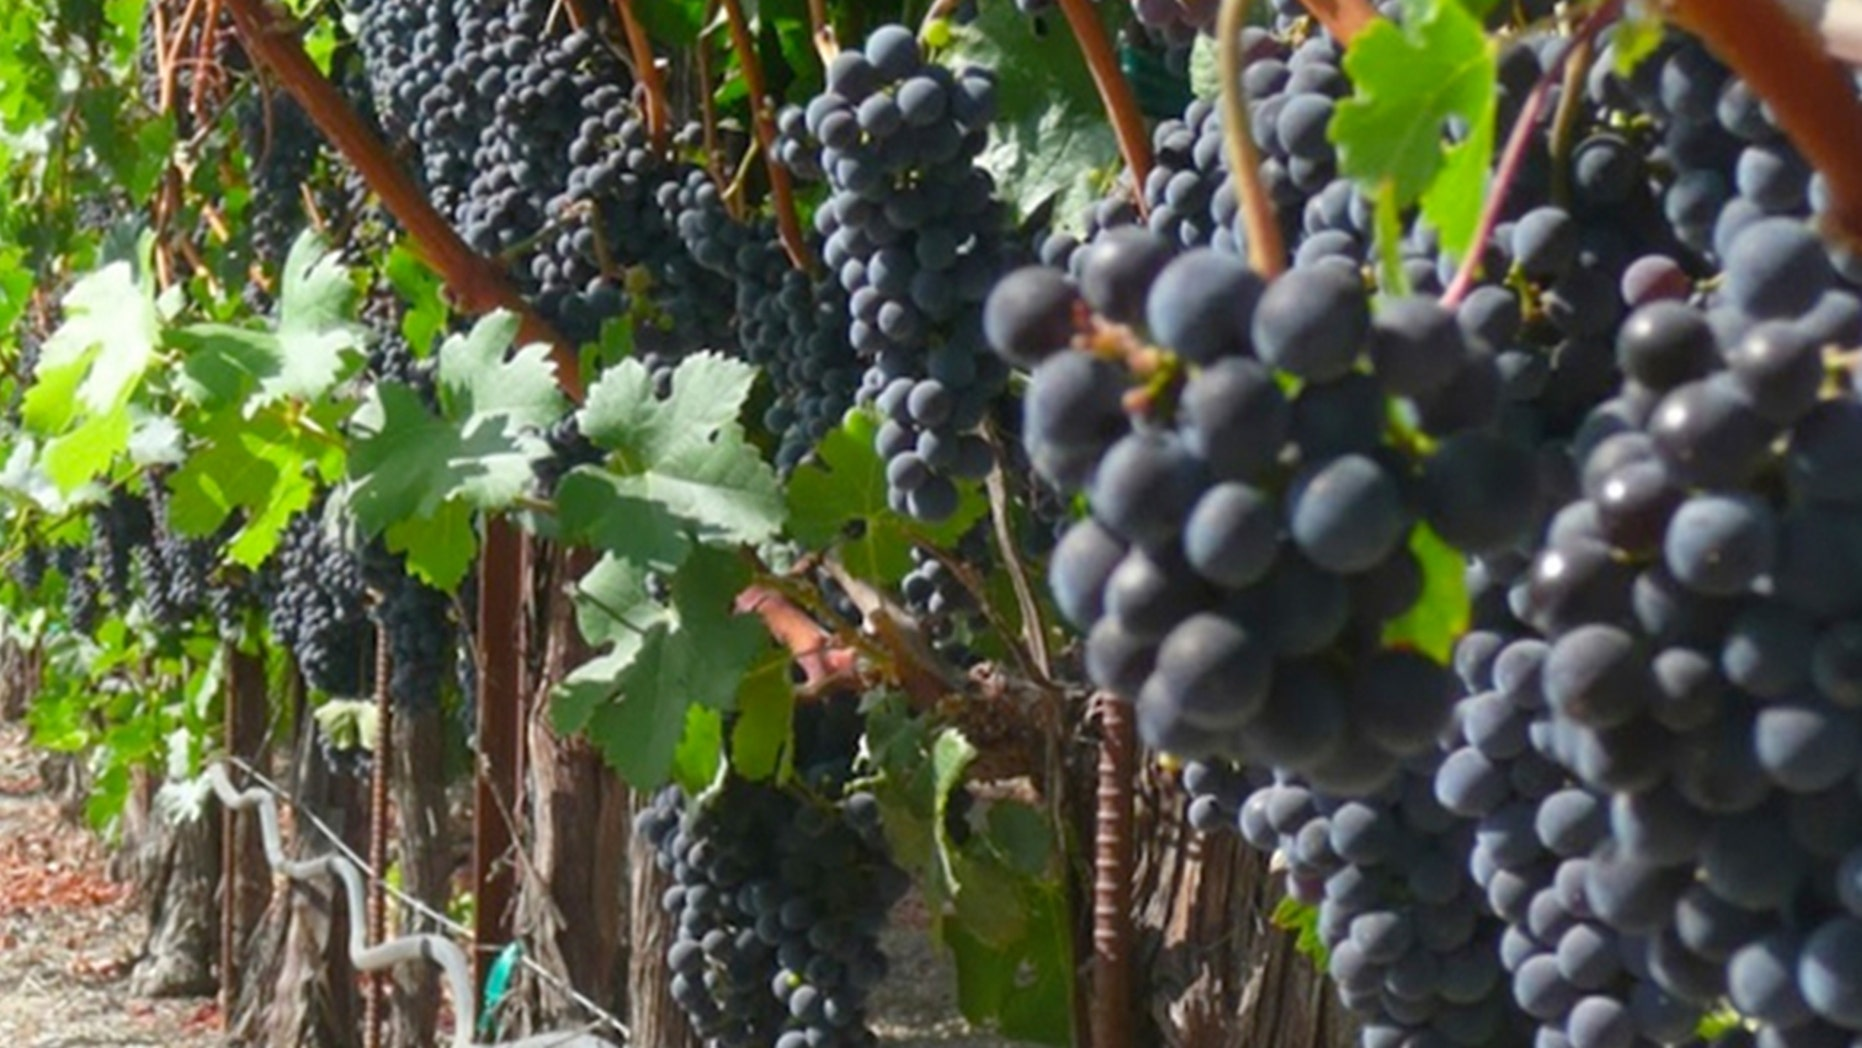 A Napa Valley worker was killed Monday after getting dragged into a harvesting machine.